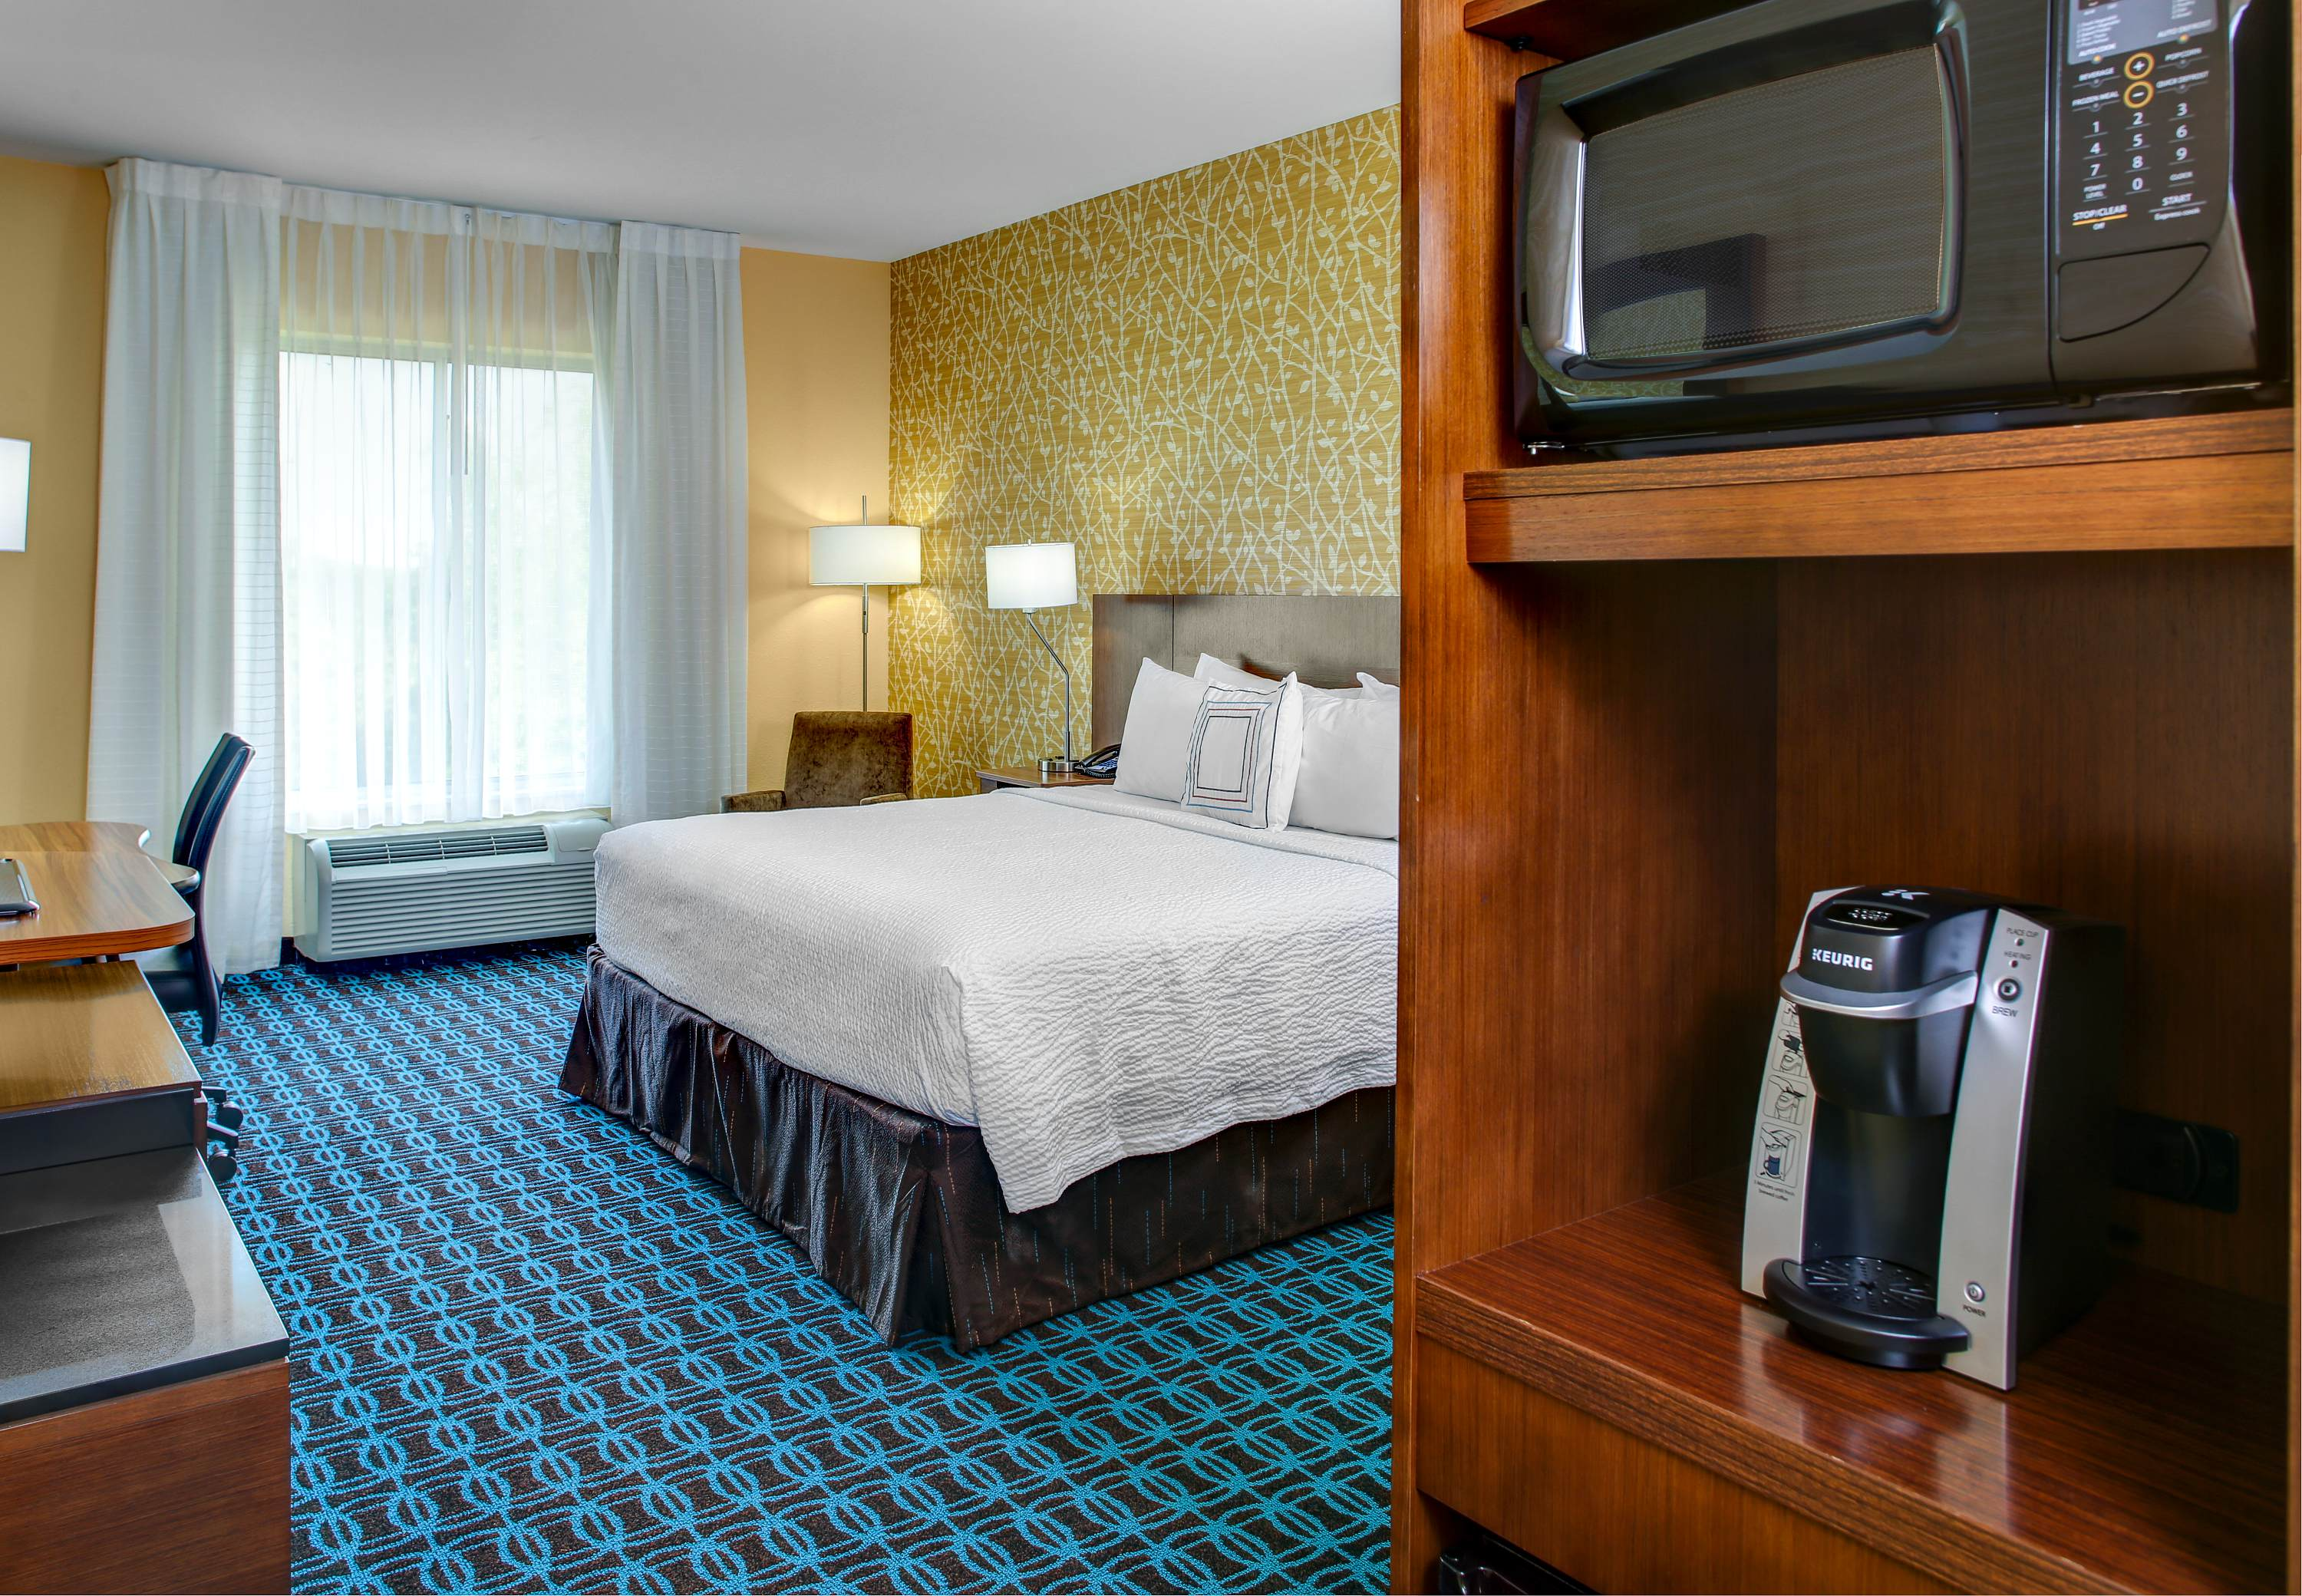 Fairfield Inn & Suites by Marriott Atlanta Stockbridge image 4